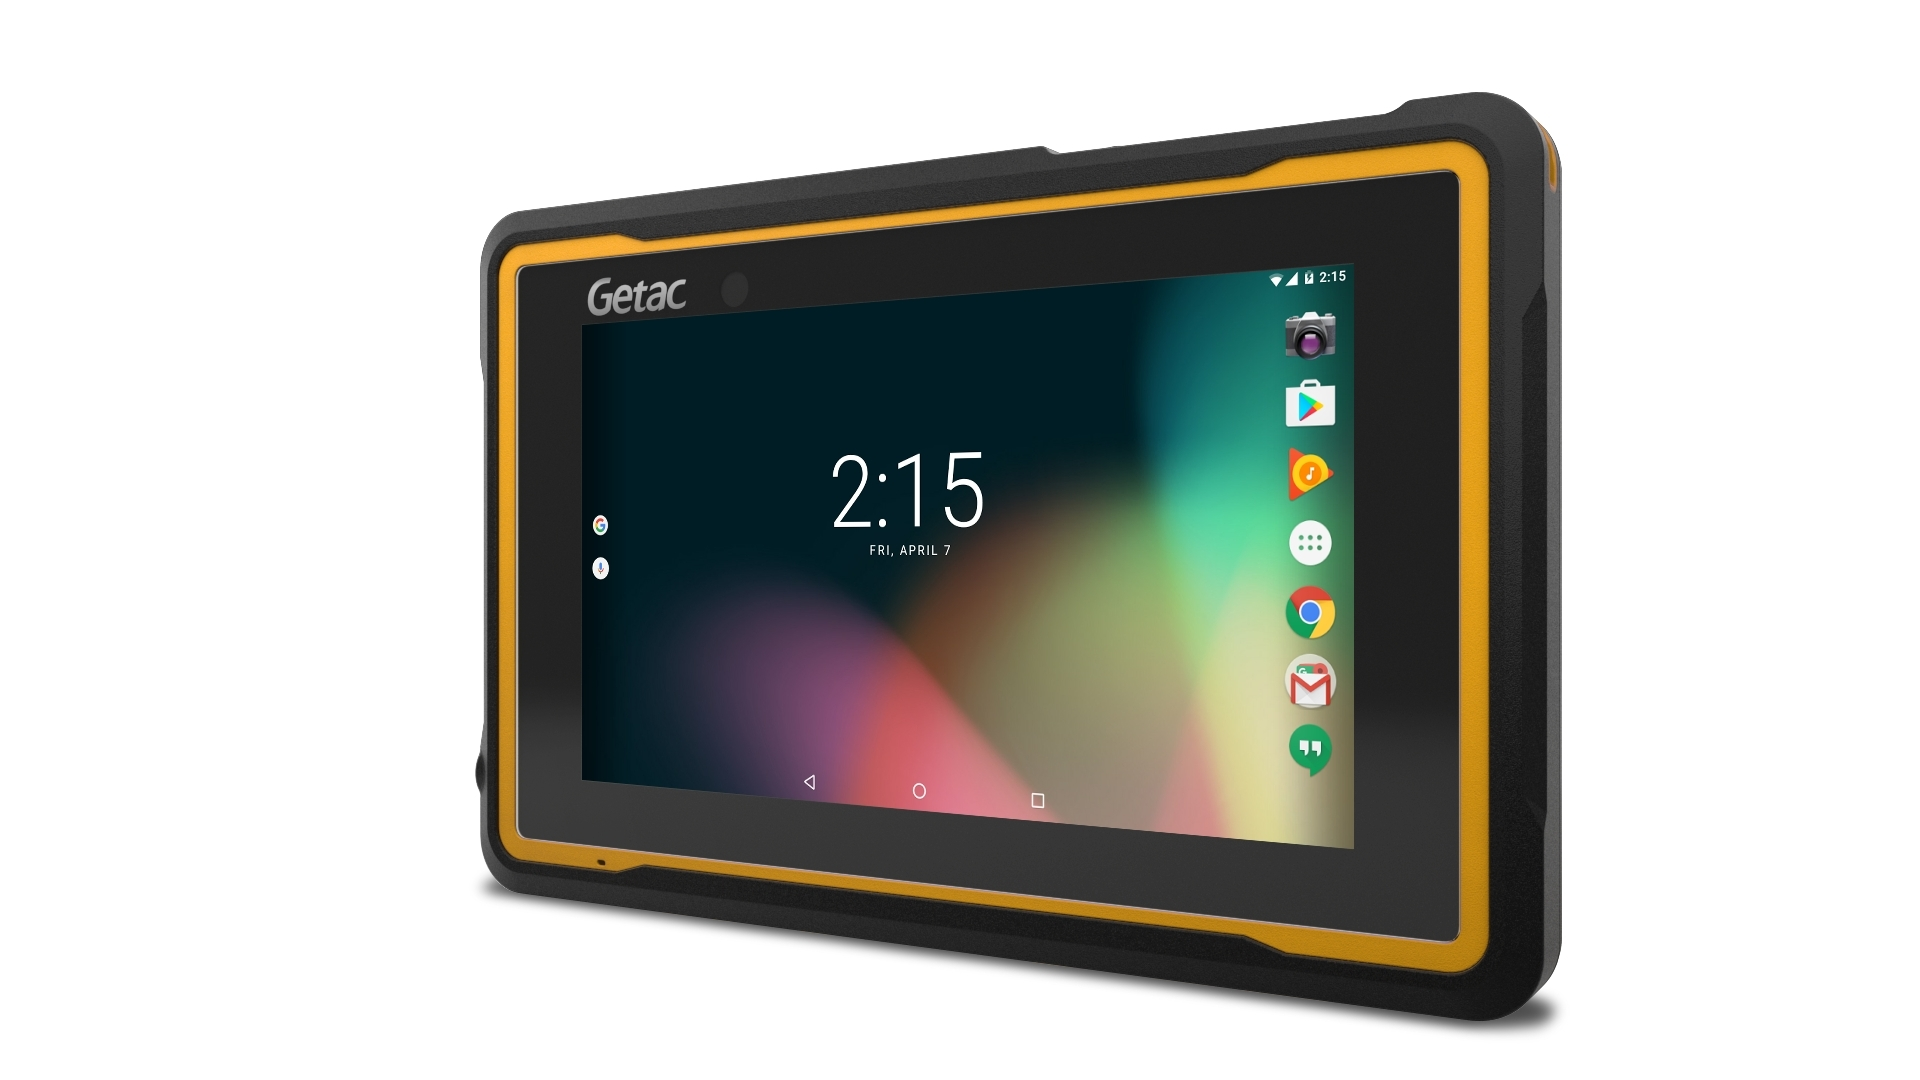 """The Getac ZX70 meets the growing needs of mobile transportation and field service professionals. The 7"""" fully rugged Android tablet is designed for one handed operation, IP67 and MIL-STD 810G certified for drops and water resistance, and offers a best-in-class battery life. (Photo: Business Wire)"""